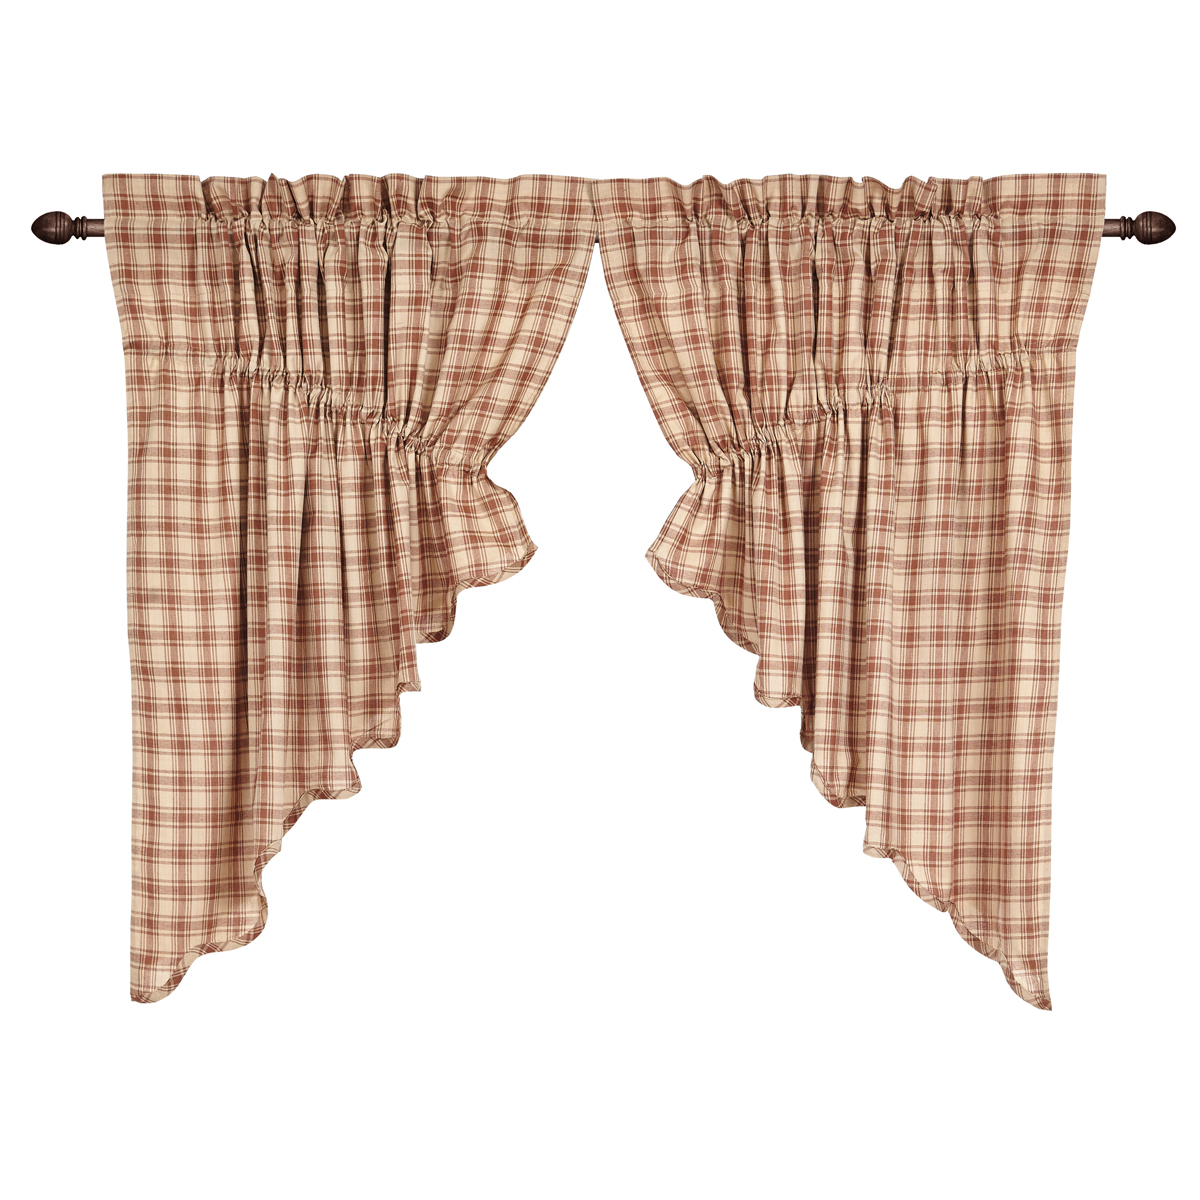 BRADLEY Scalloped Prairie Swag -Set of 2- 36x36x18 - Khaki/Brown - VHC Brands